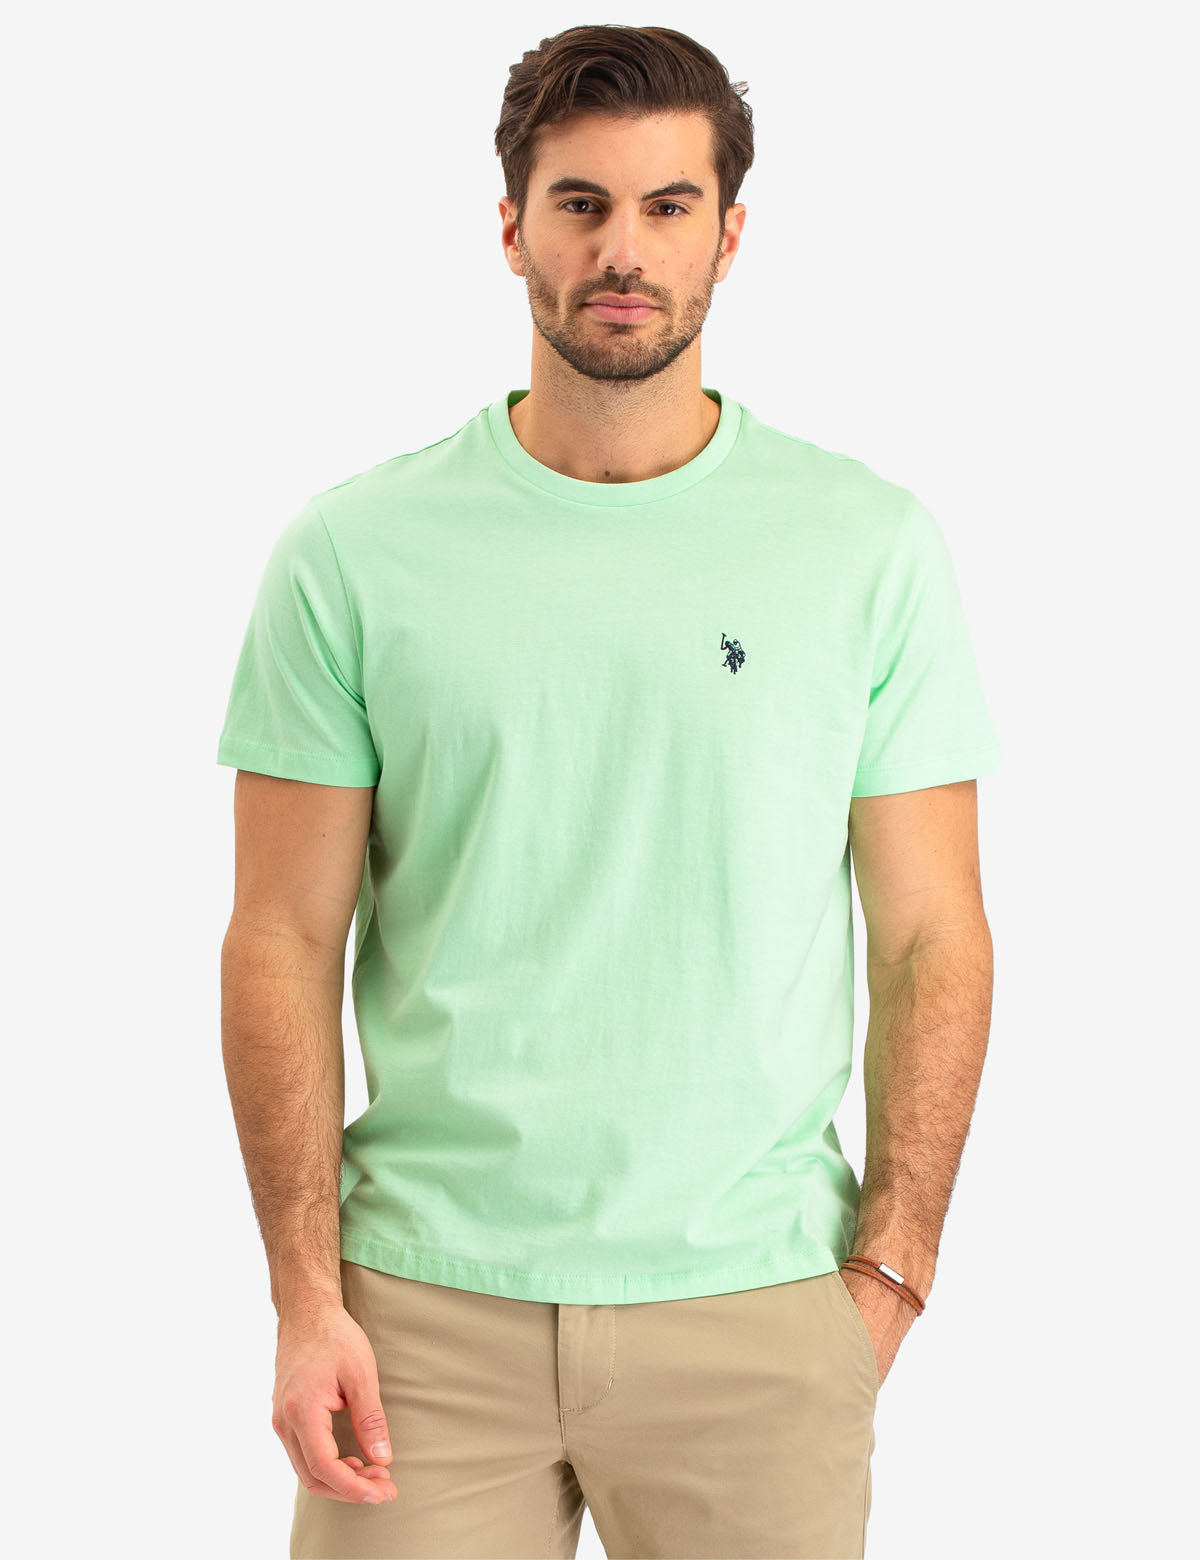 T-Shirts for Men Polo Short Sleeve T-Shirts Top Men Tees L